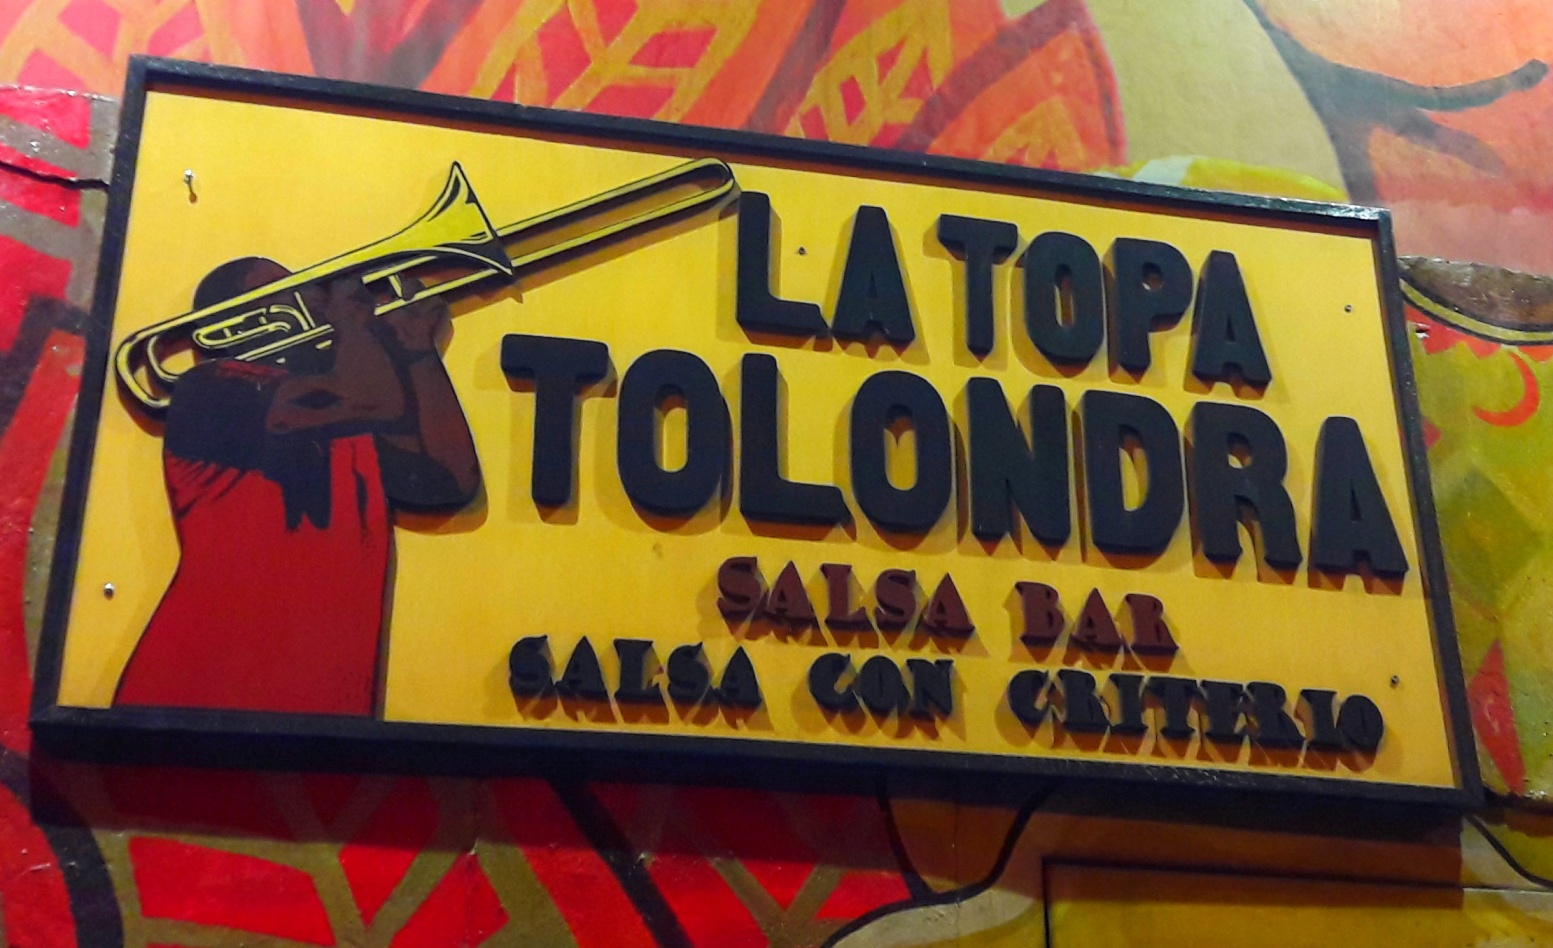 La Topa, une institution de la salsa.